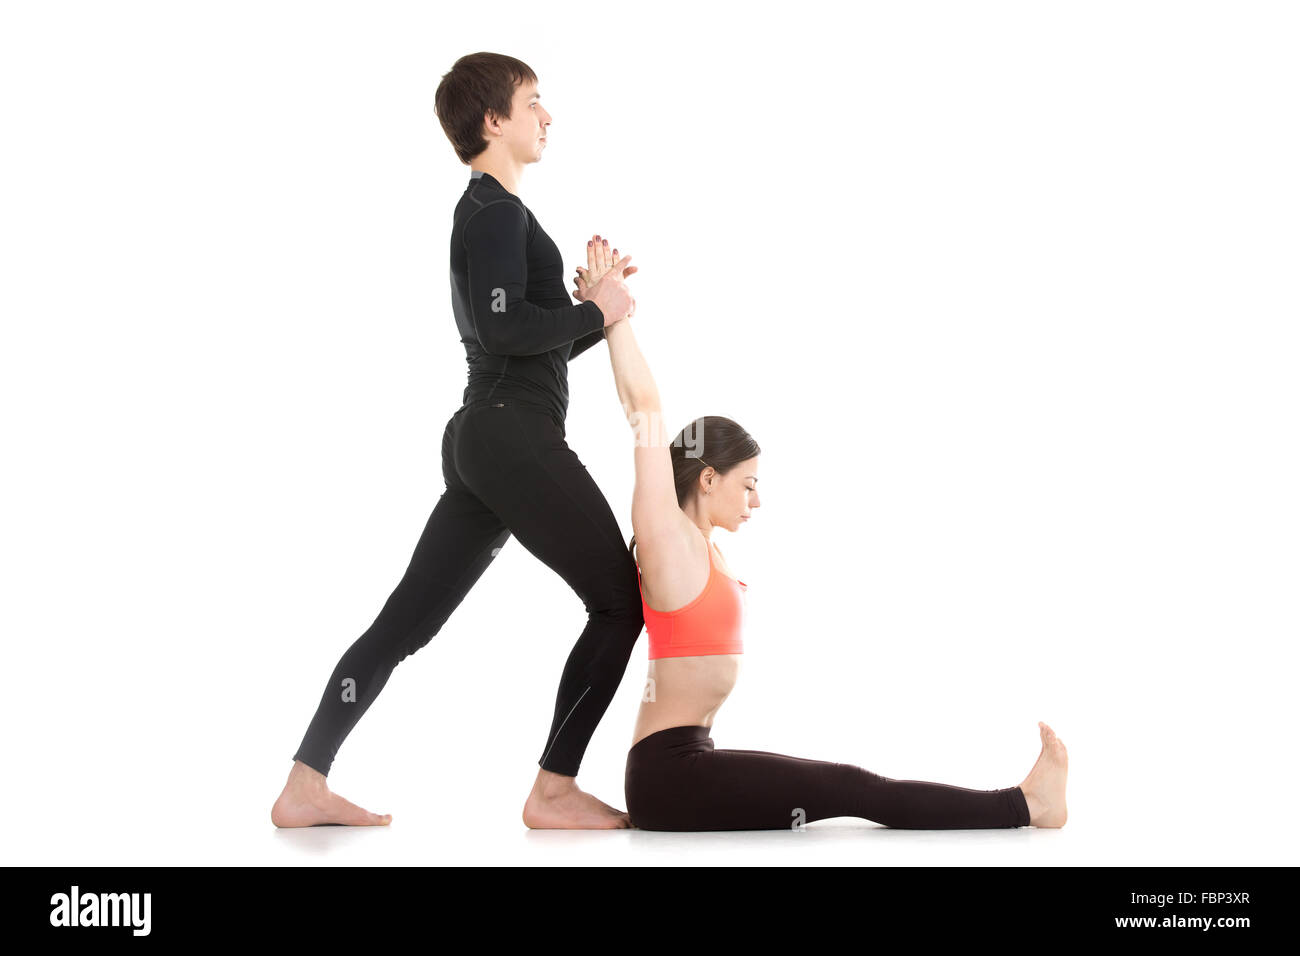 Two sporty people practicing yoga, young man assisting girl doing seated forward bend pose, paschimottanasana, side - Stock Image